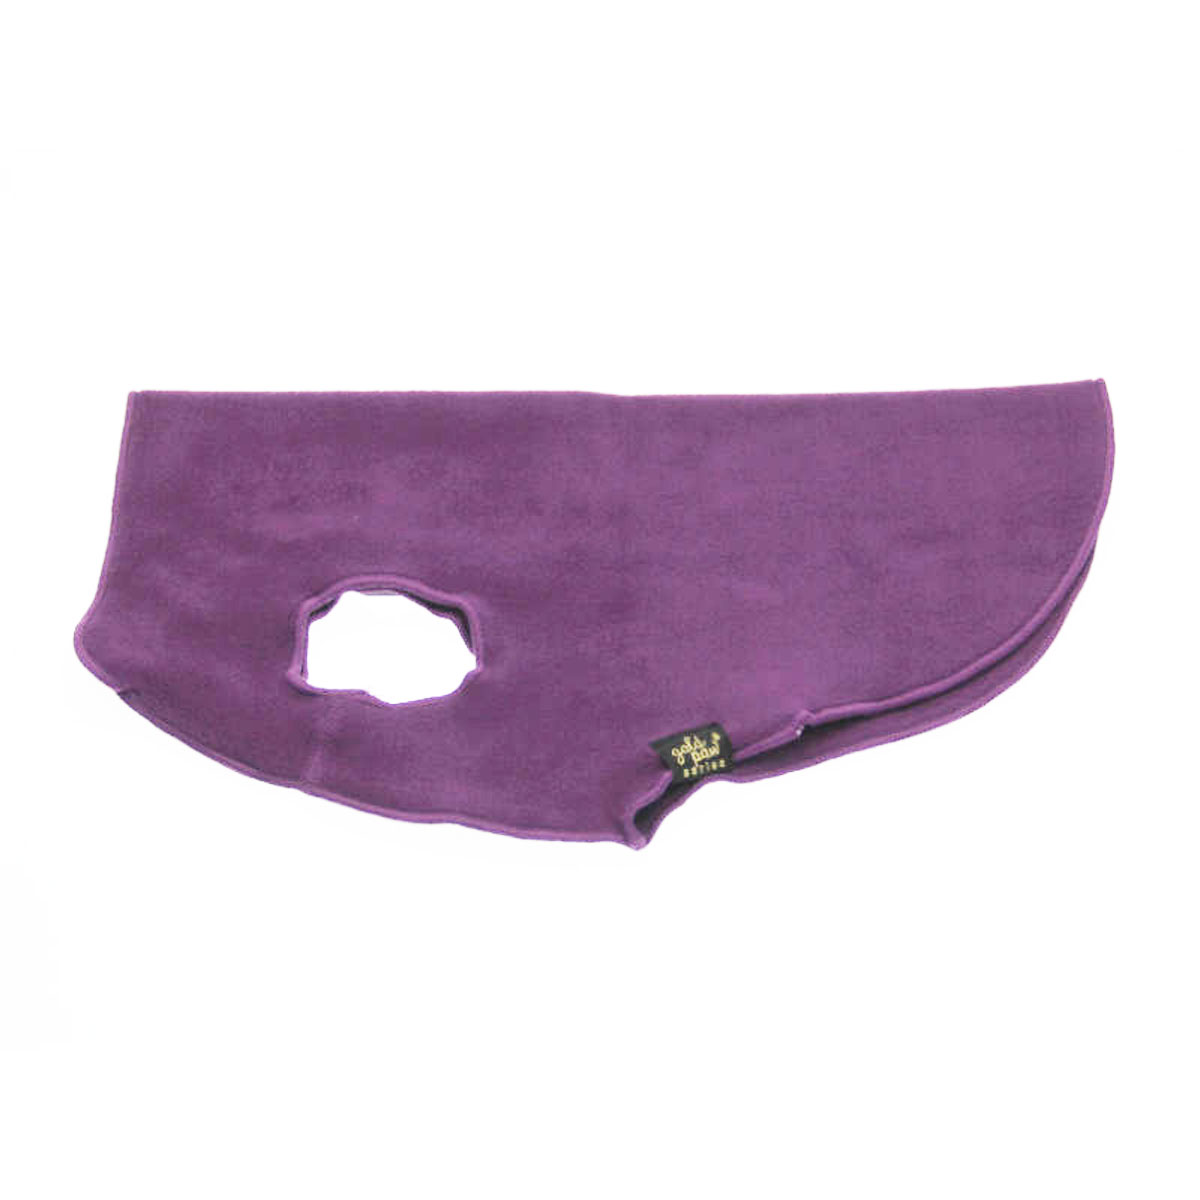 Gold Paw Fleece Dog Jacket - Eggplant